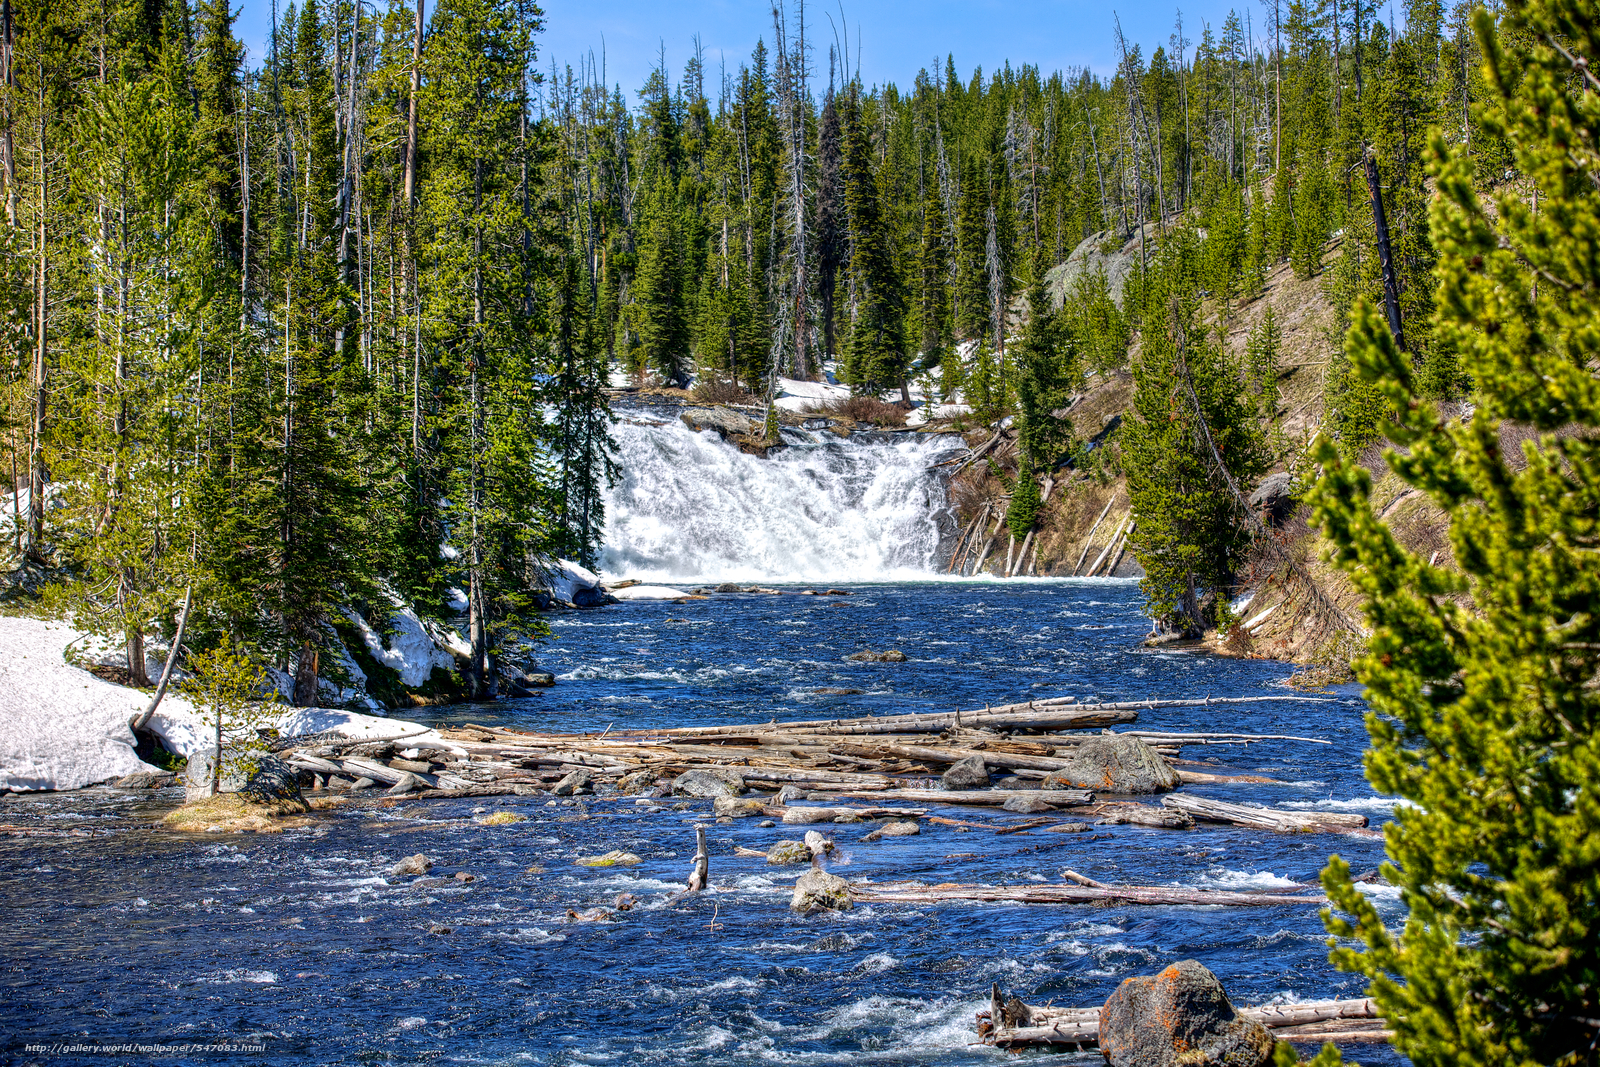 Download wallpaper Yellowstone National Park waterfall river trees 1600x1067